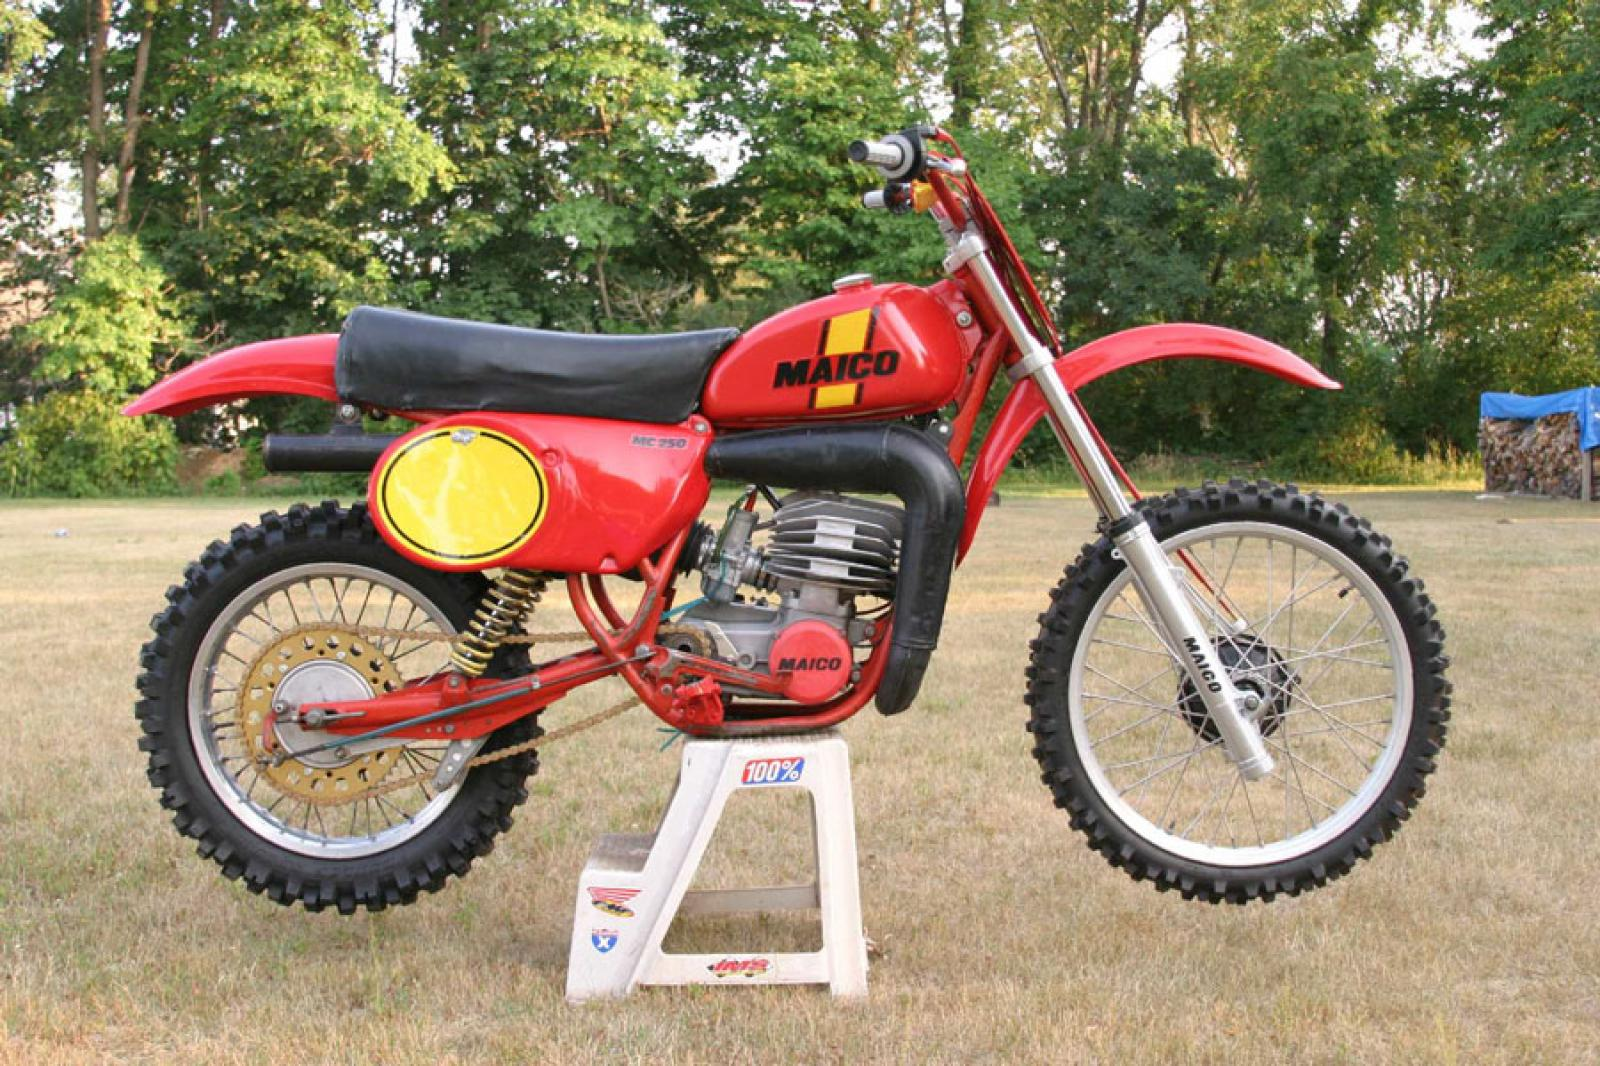 Maico GME 250 1984 images #102387